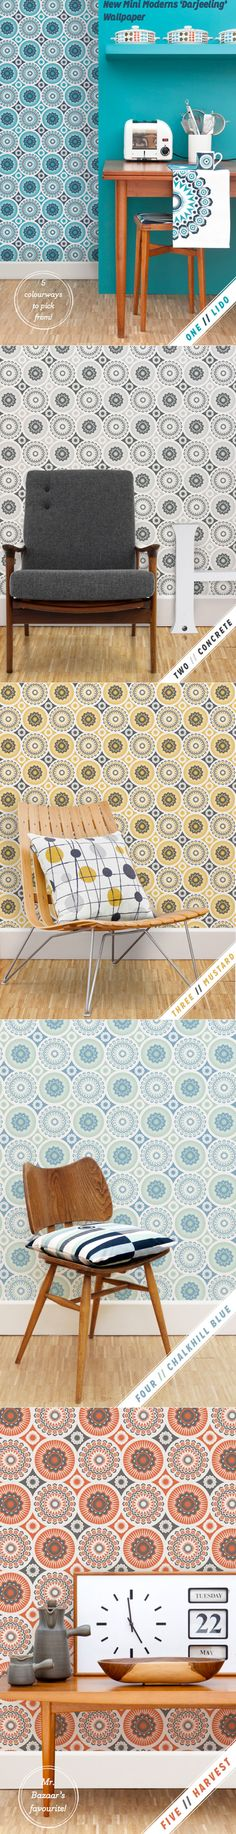 Mini Moderns Darjeeling wallpaper in five colourways